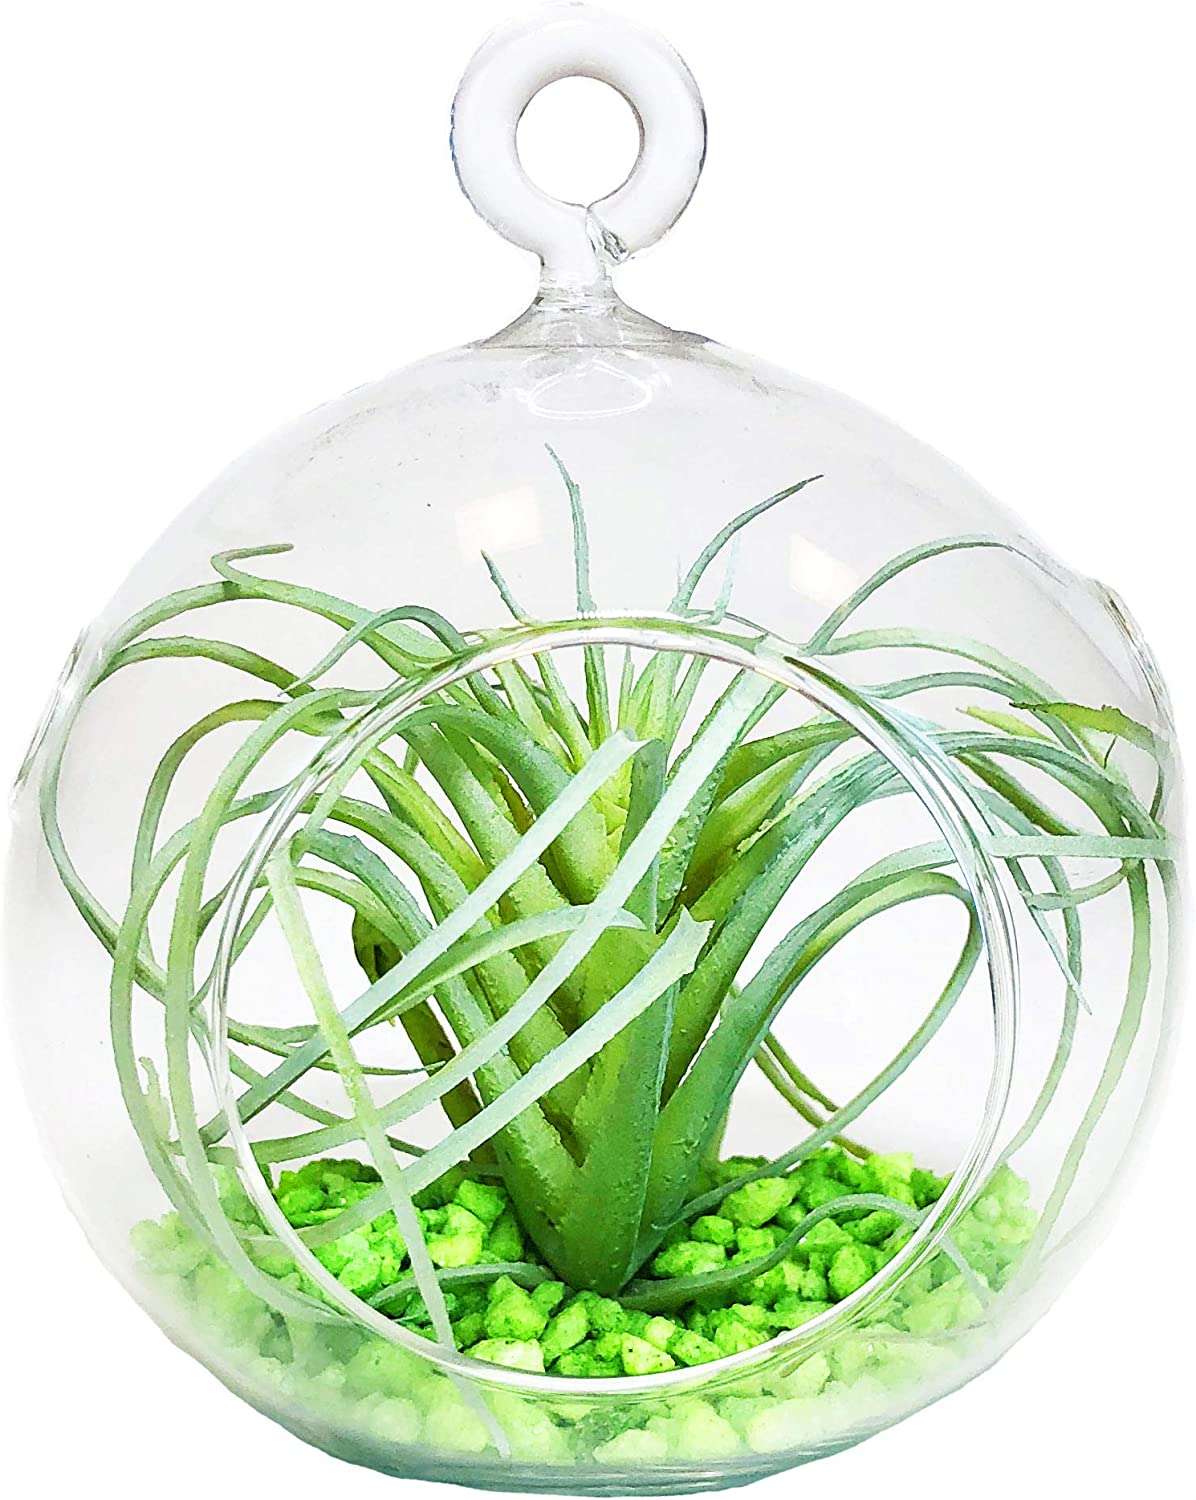 CYS EXCEL Plant Terrarium, Glass Orbs, 4.5 Tall x 4 Wide, Pack 6 Air Plants, Tea Light Candle Holders, Succulents Moss Miniature Garden Planters Home D cor